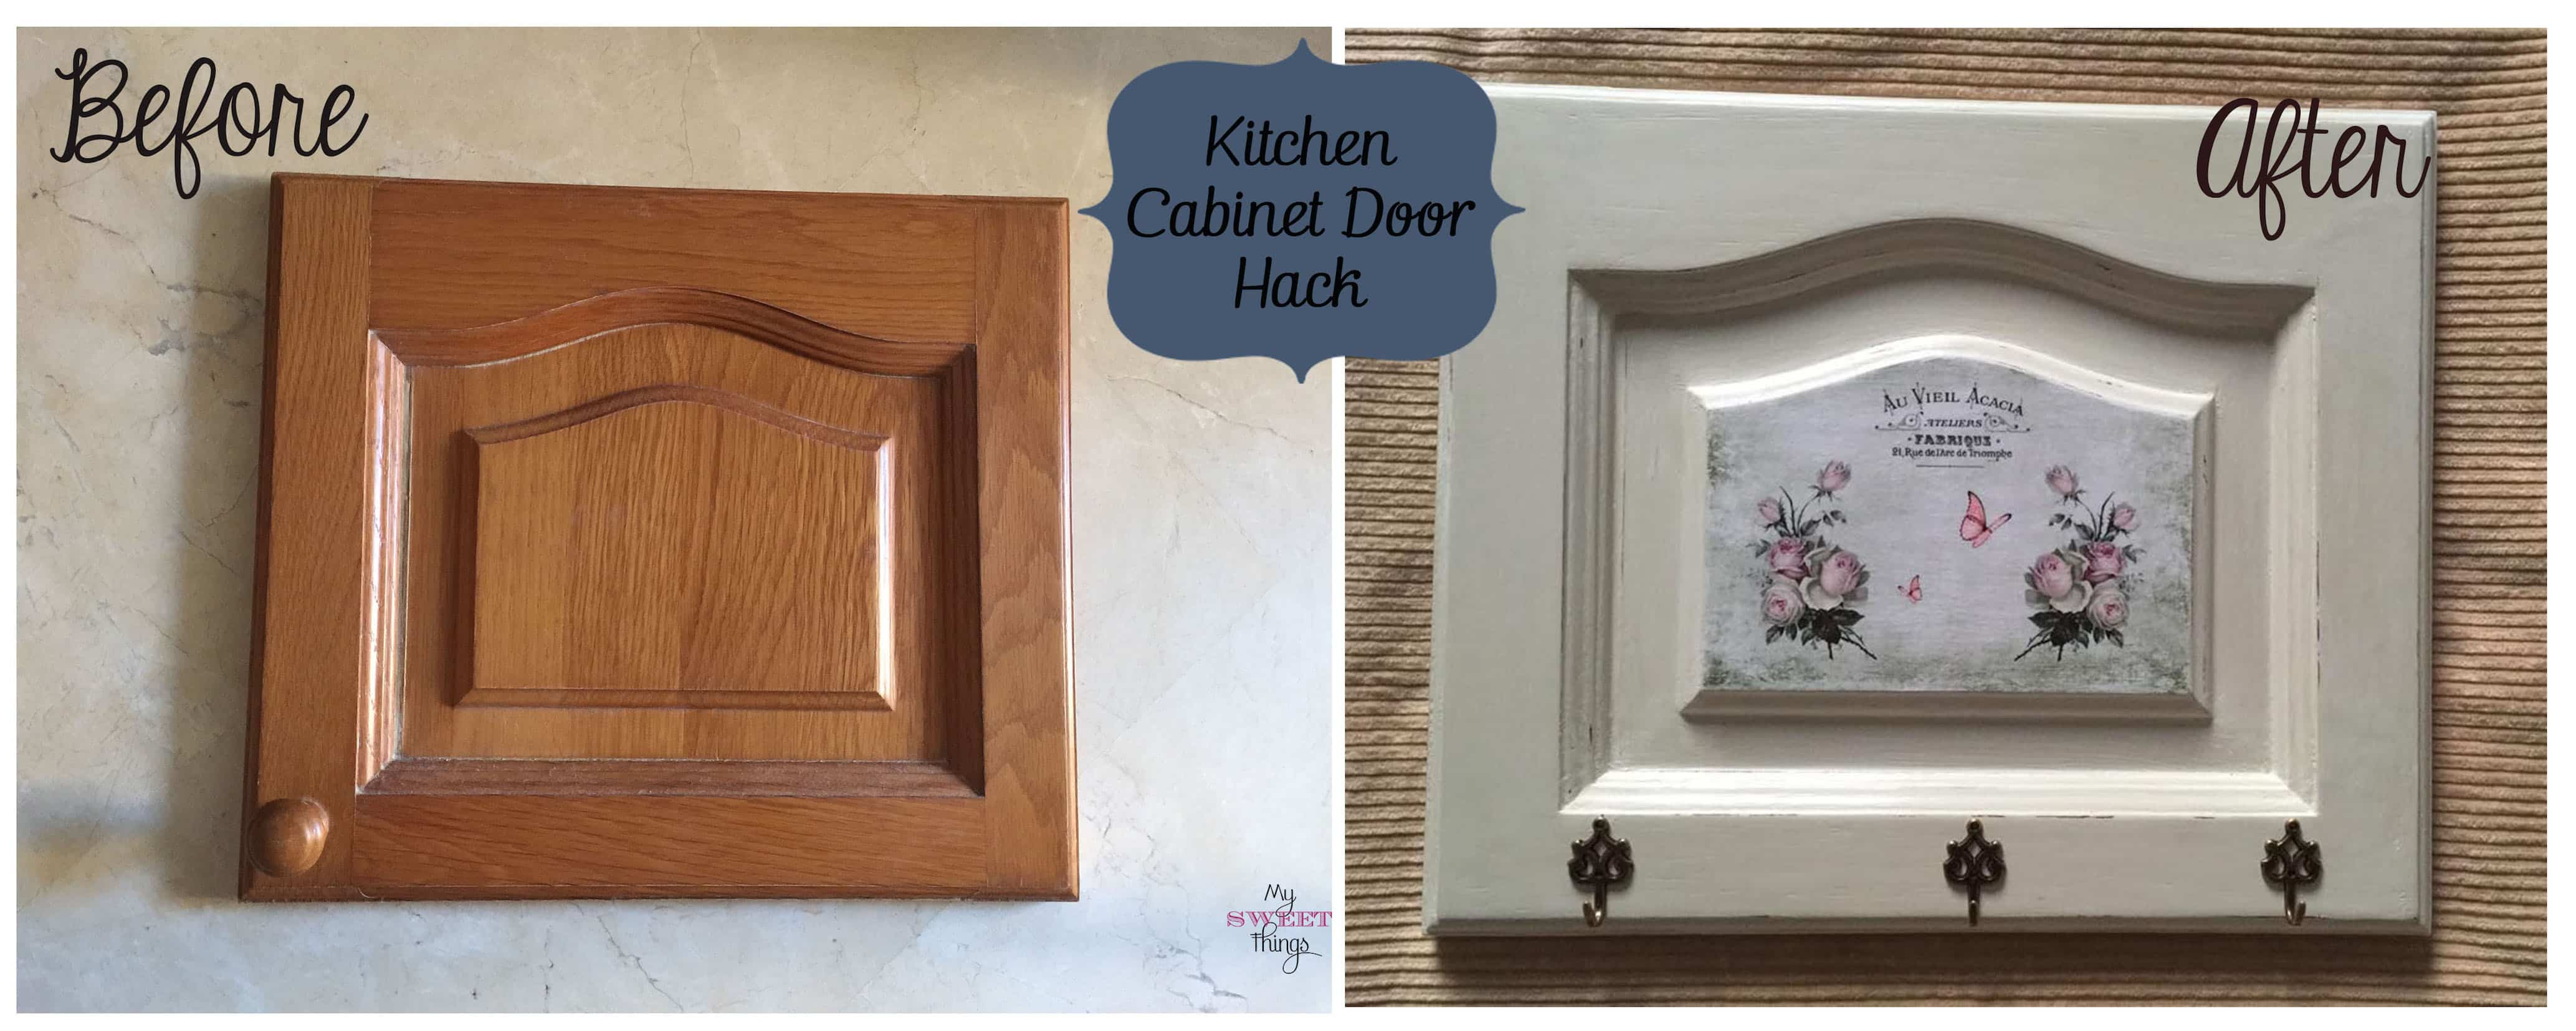 Kitchen Cabinet Door Hack - Before & After